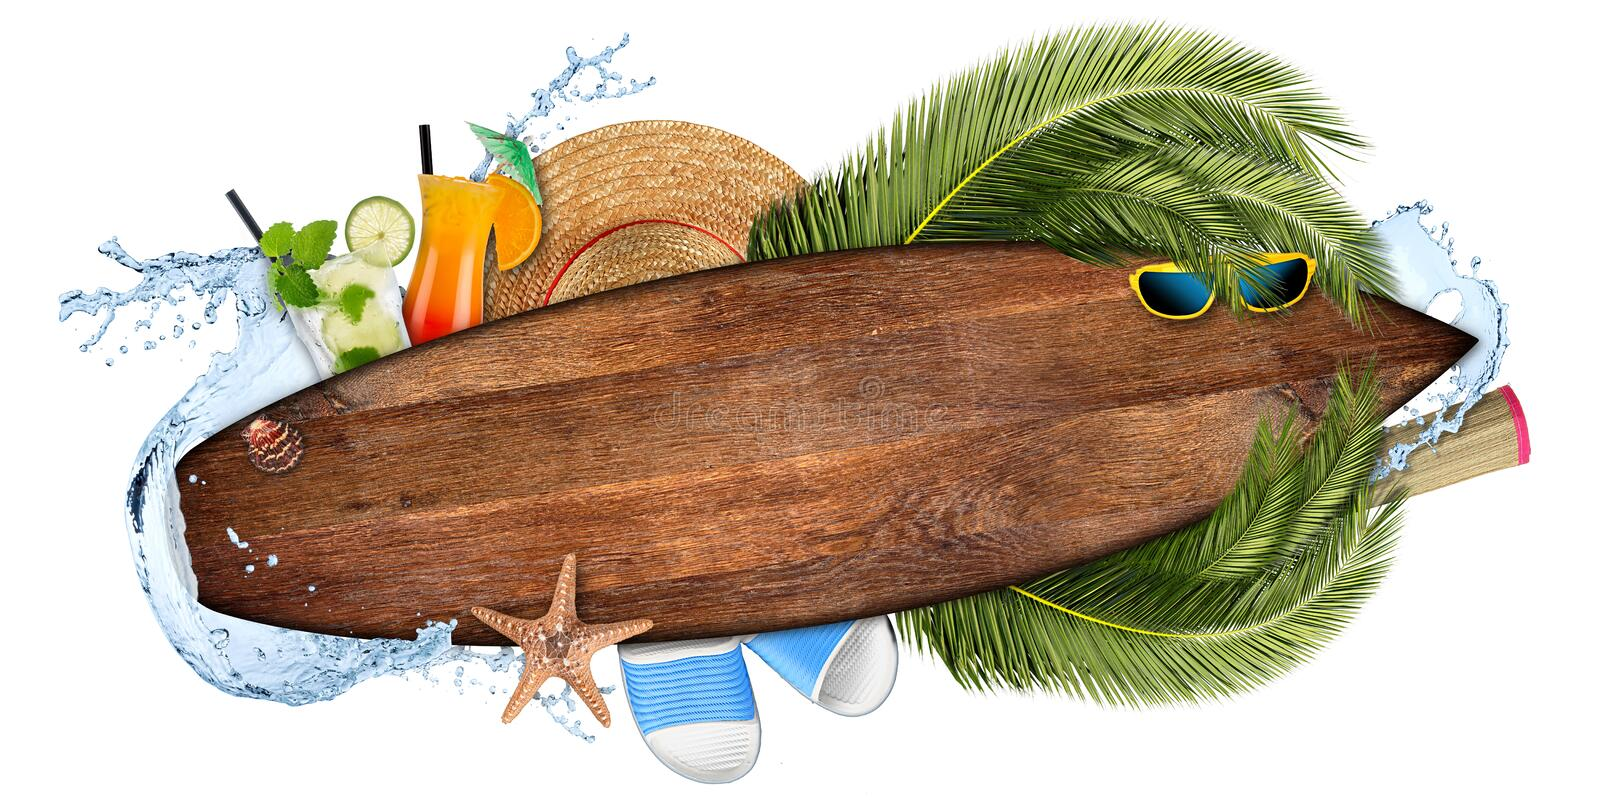 beach summer cocktail bar concept tourism background empty wooden surfboard royalty free illustration